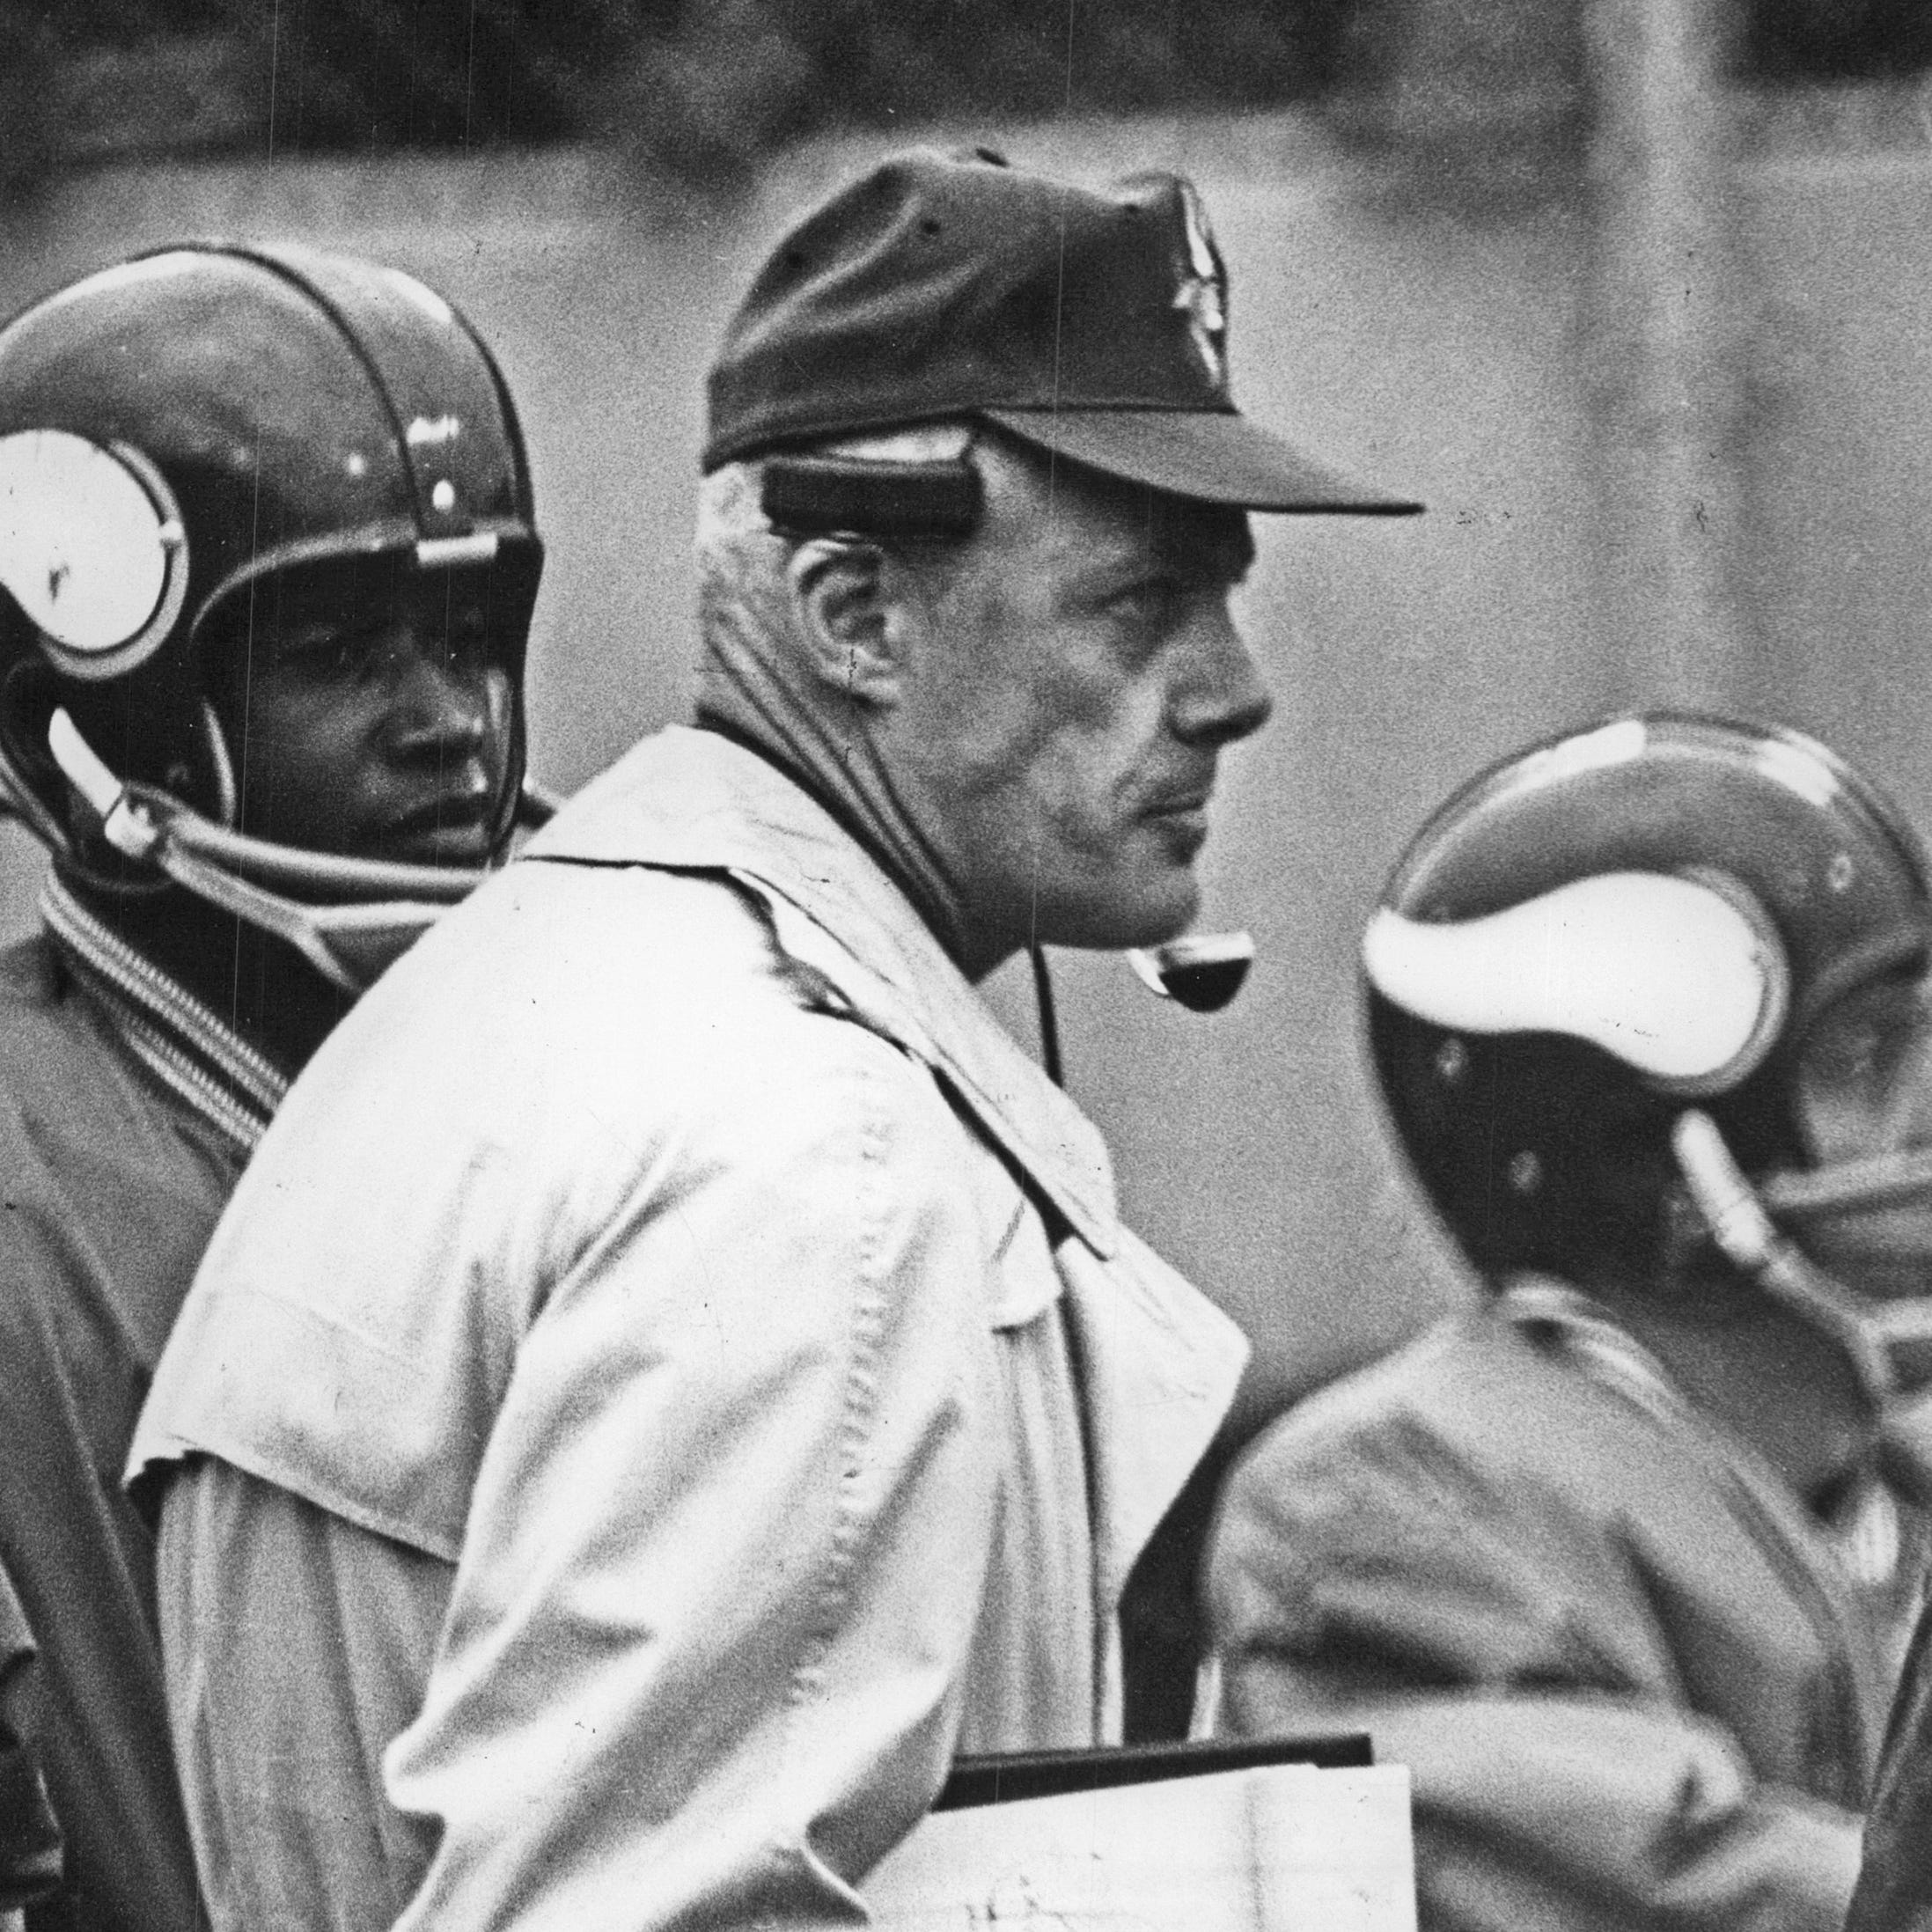 Top 10 best high school athletes in Wisconsin history profile: Bud Grant